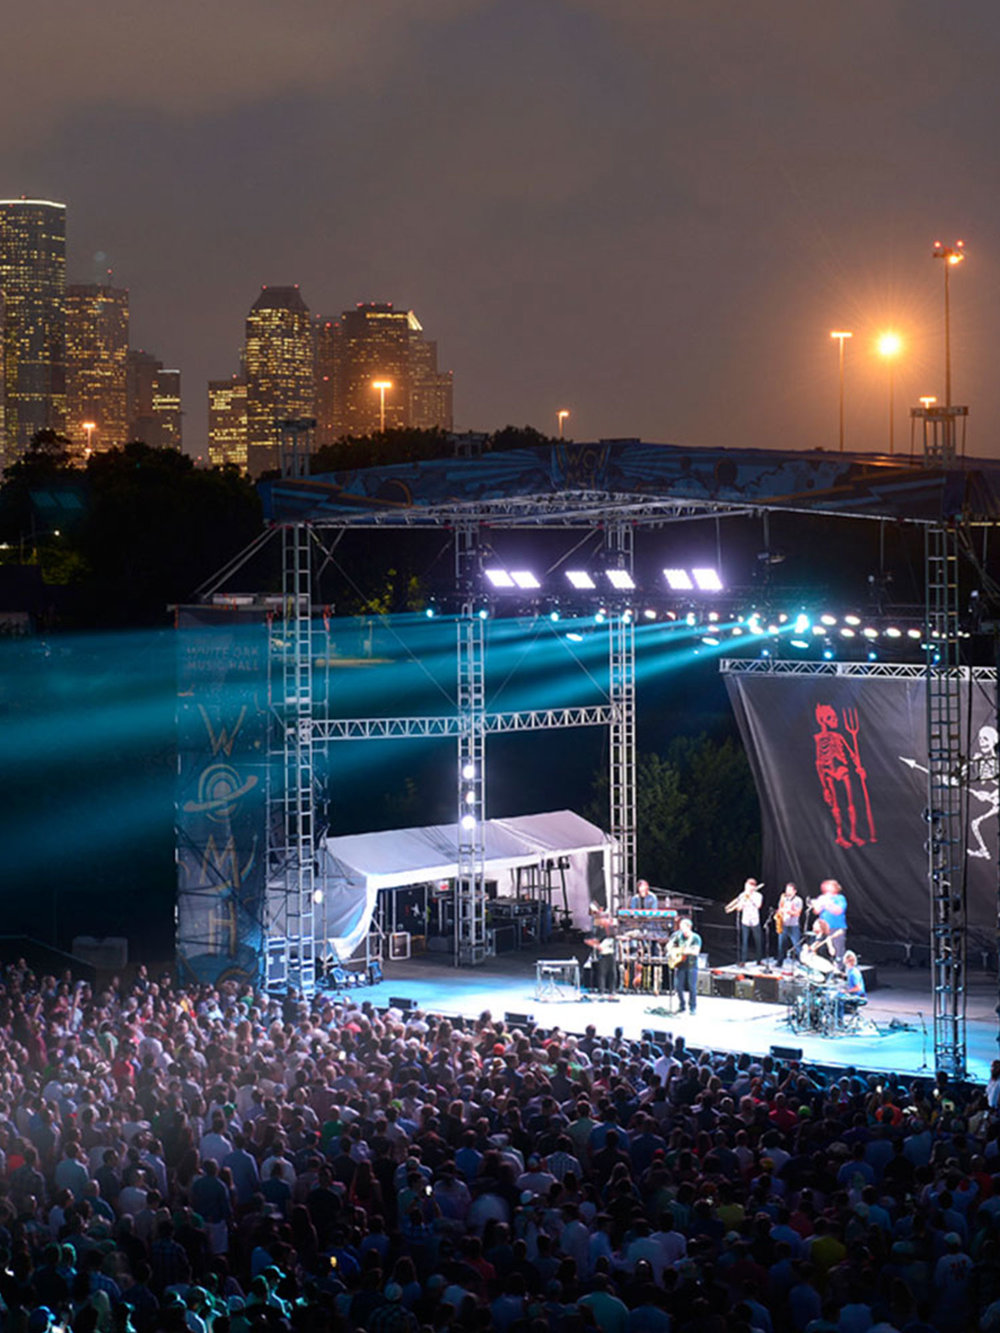 Houston's Groundbreaking New Concert Complex Opens With a Bang: Music in the City Will Never be the Same Again Paper City Magazine by Jailyn Marcel & Matthew Ramirez (Aug. 2016)